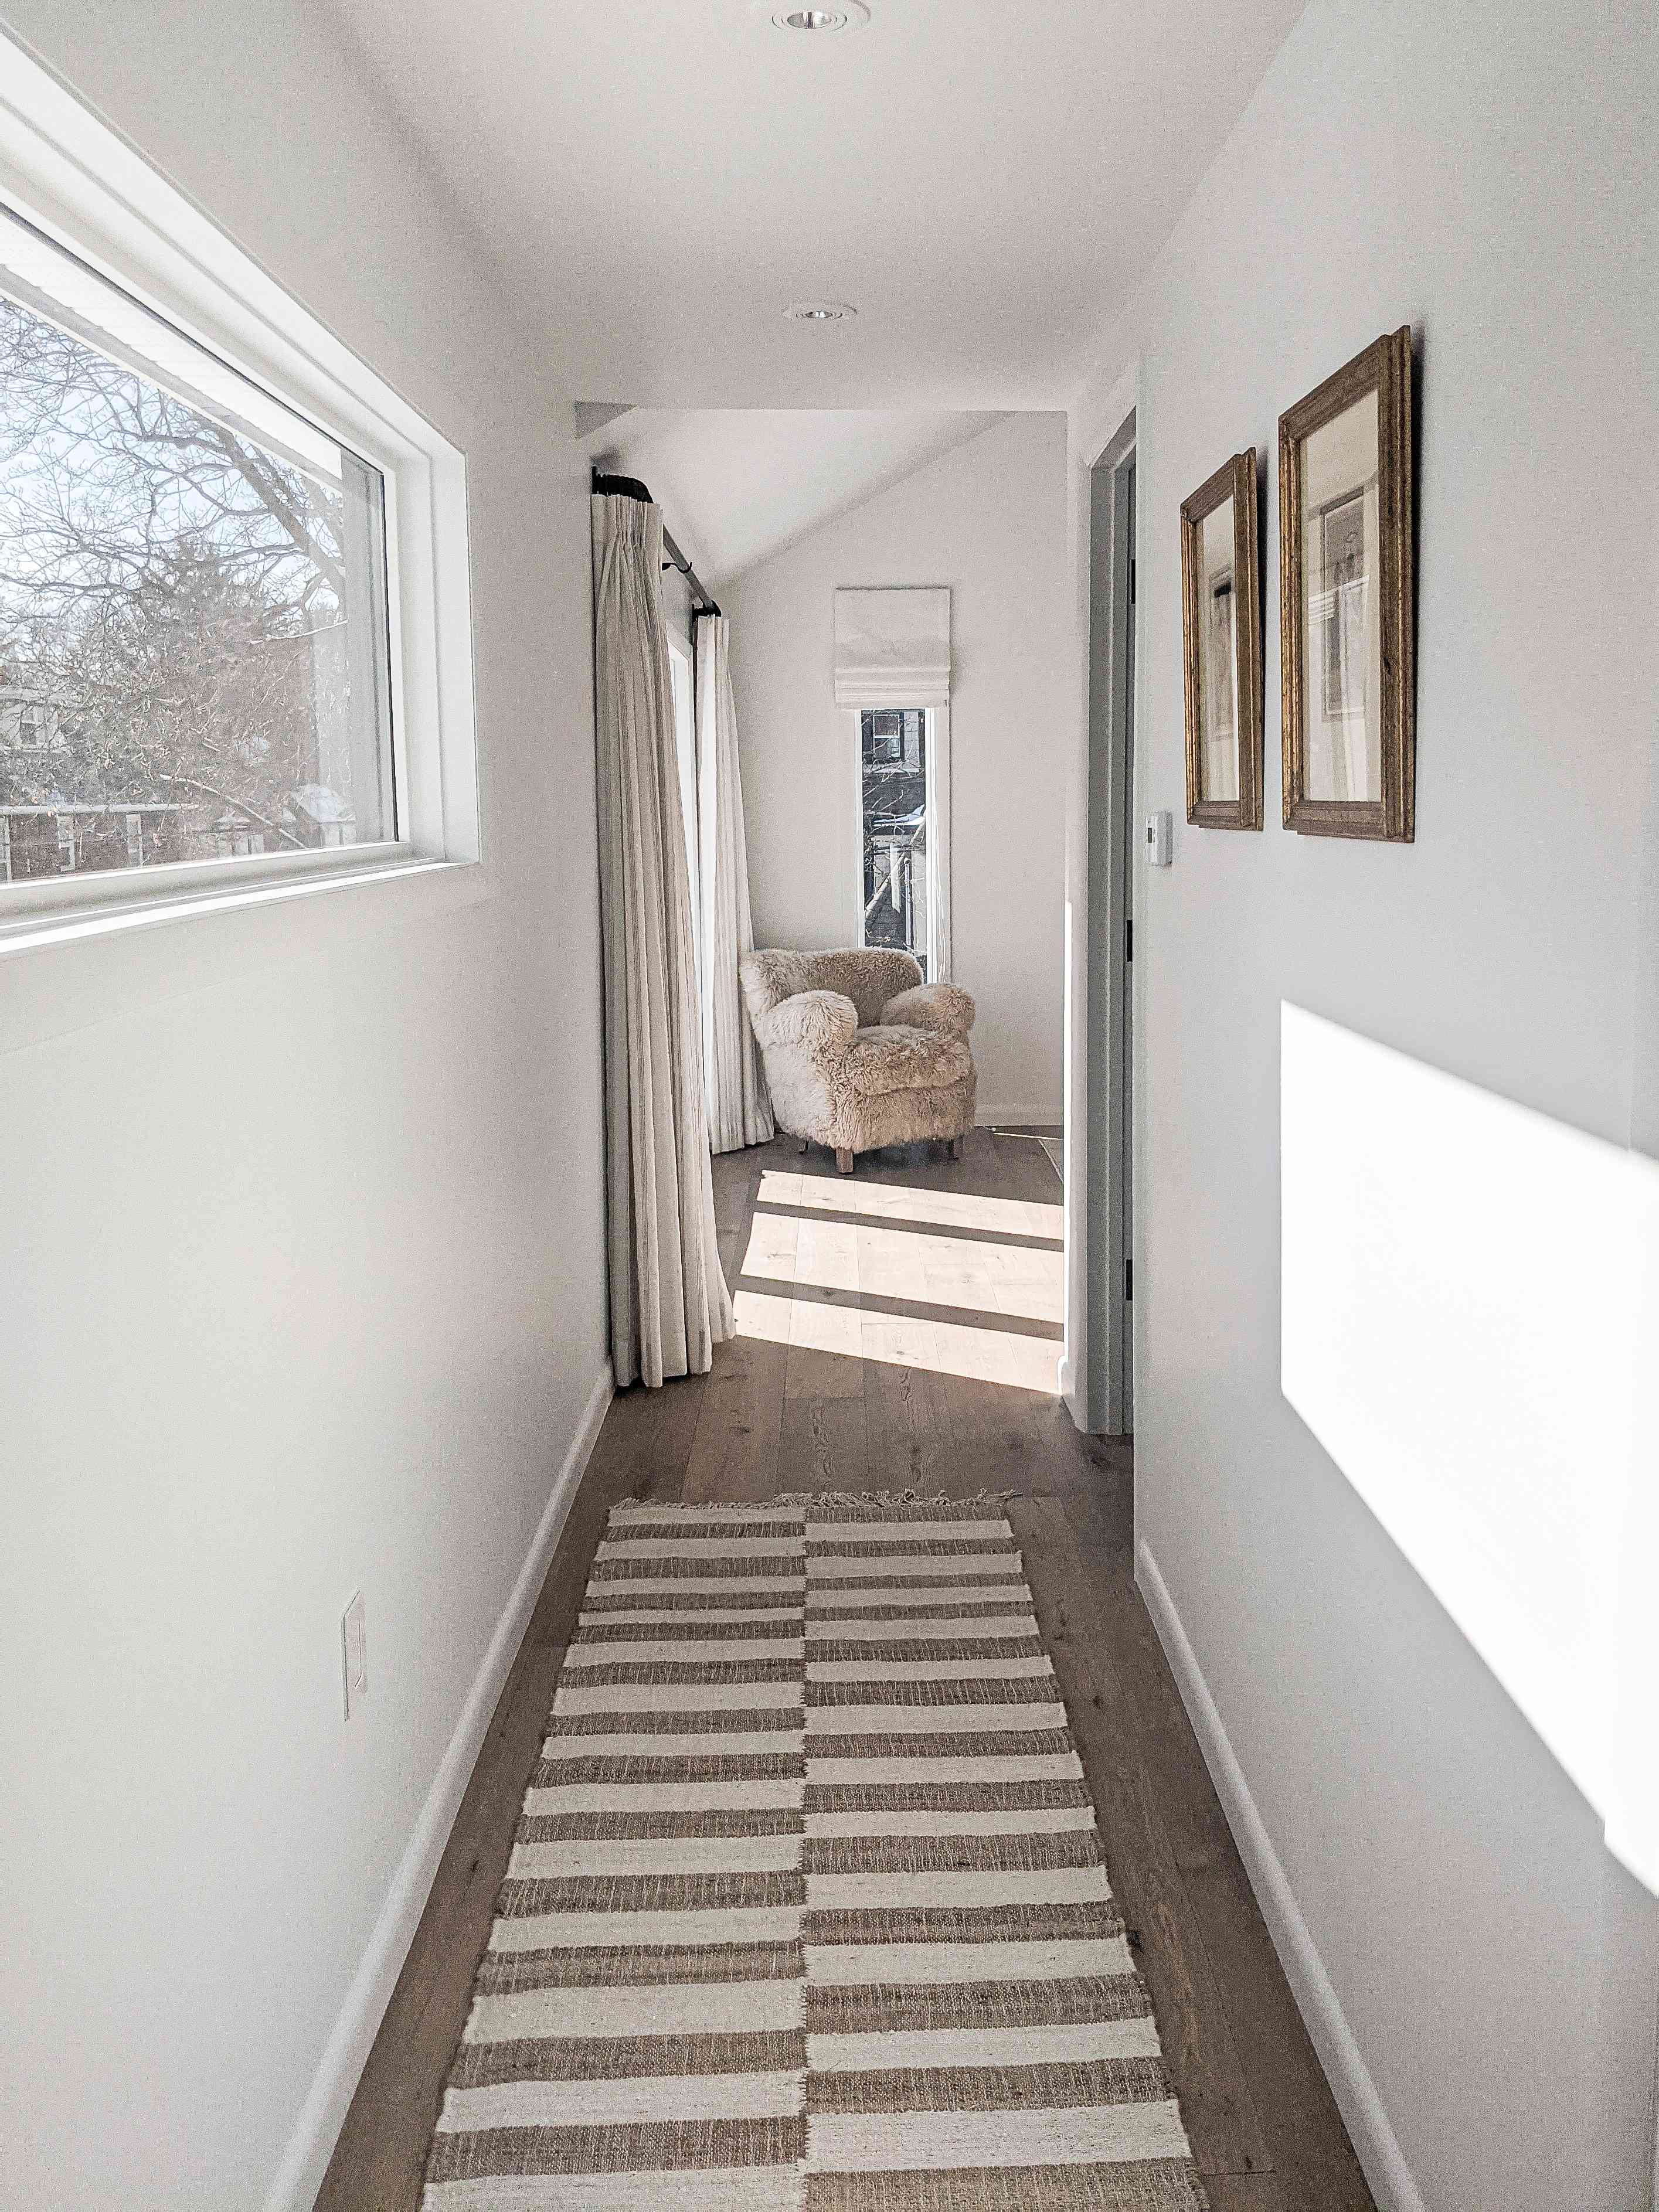 A hallway in the home of Molly & Fritz features a bright window